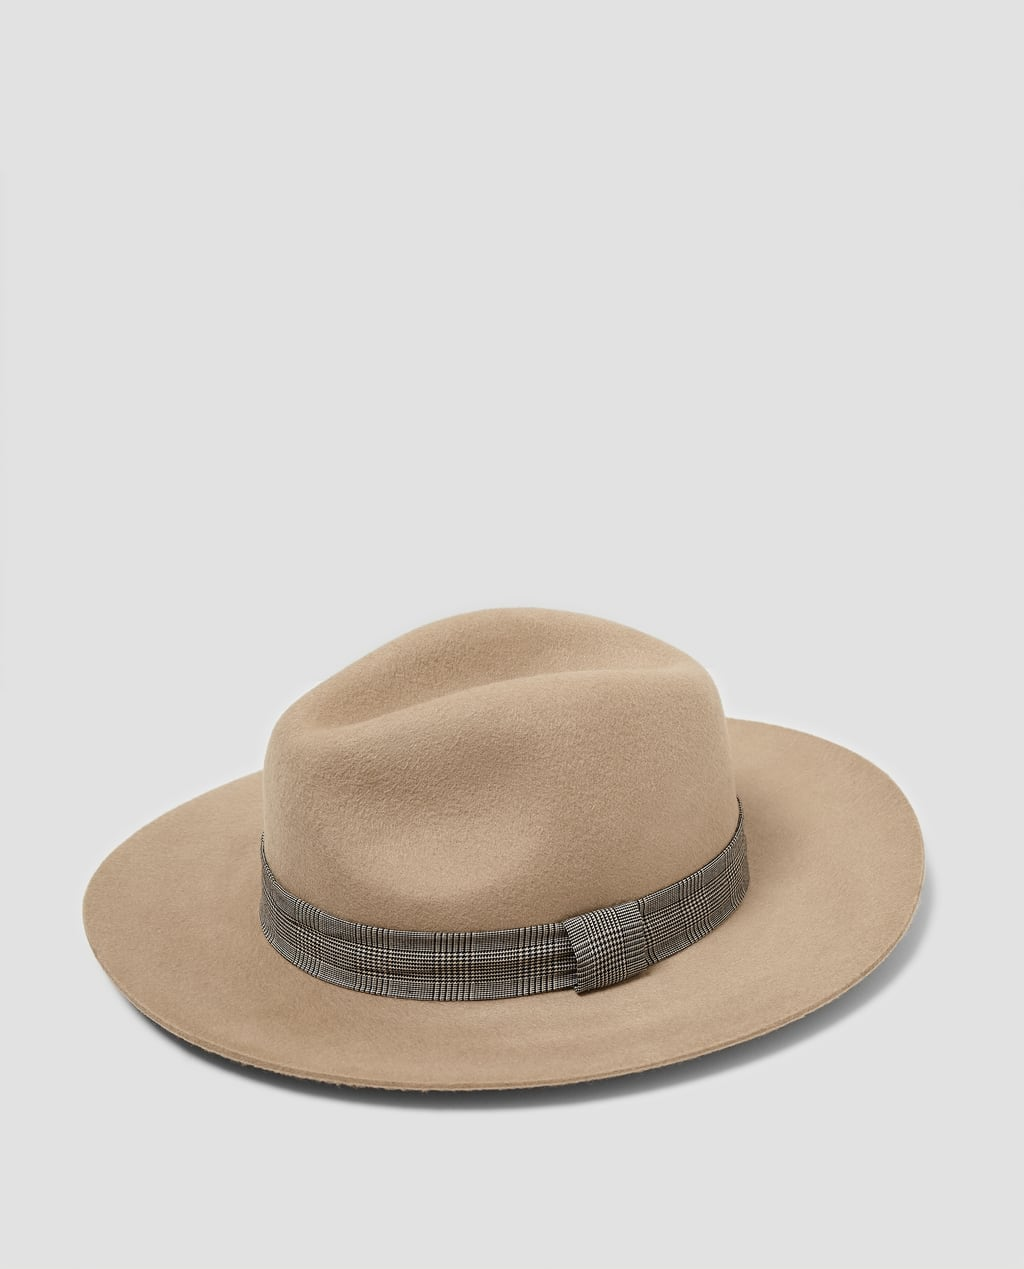 love me a good fedora